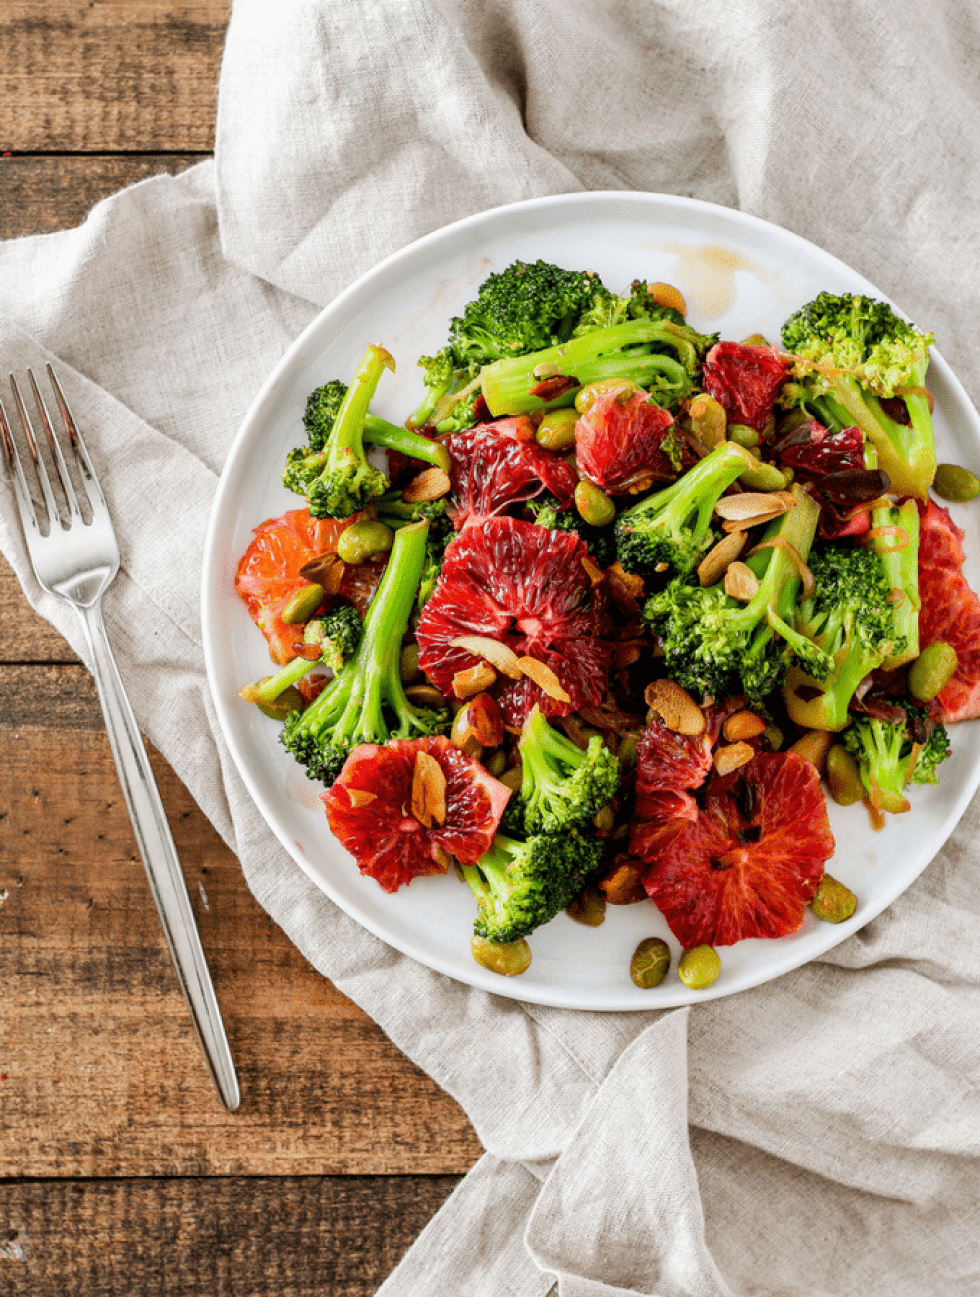 Broccoli Stir-Fry with Blood Oranges on white plate with cream napkin and fork against wood backdrop.